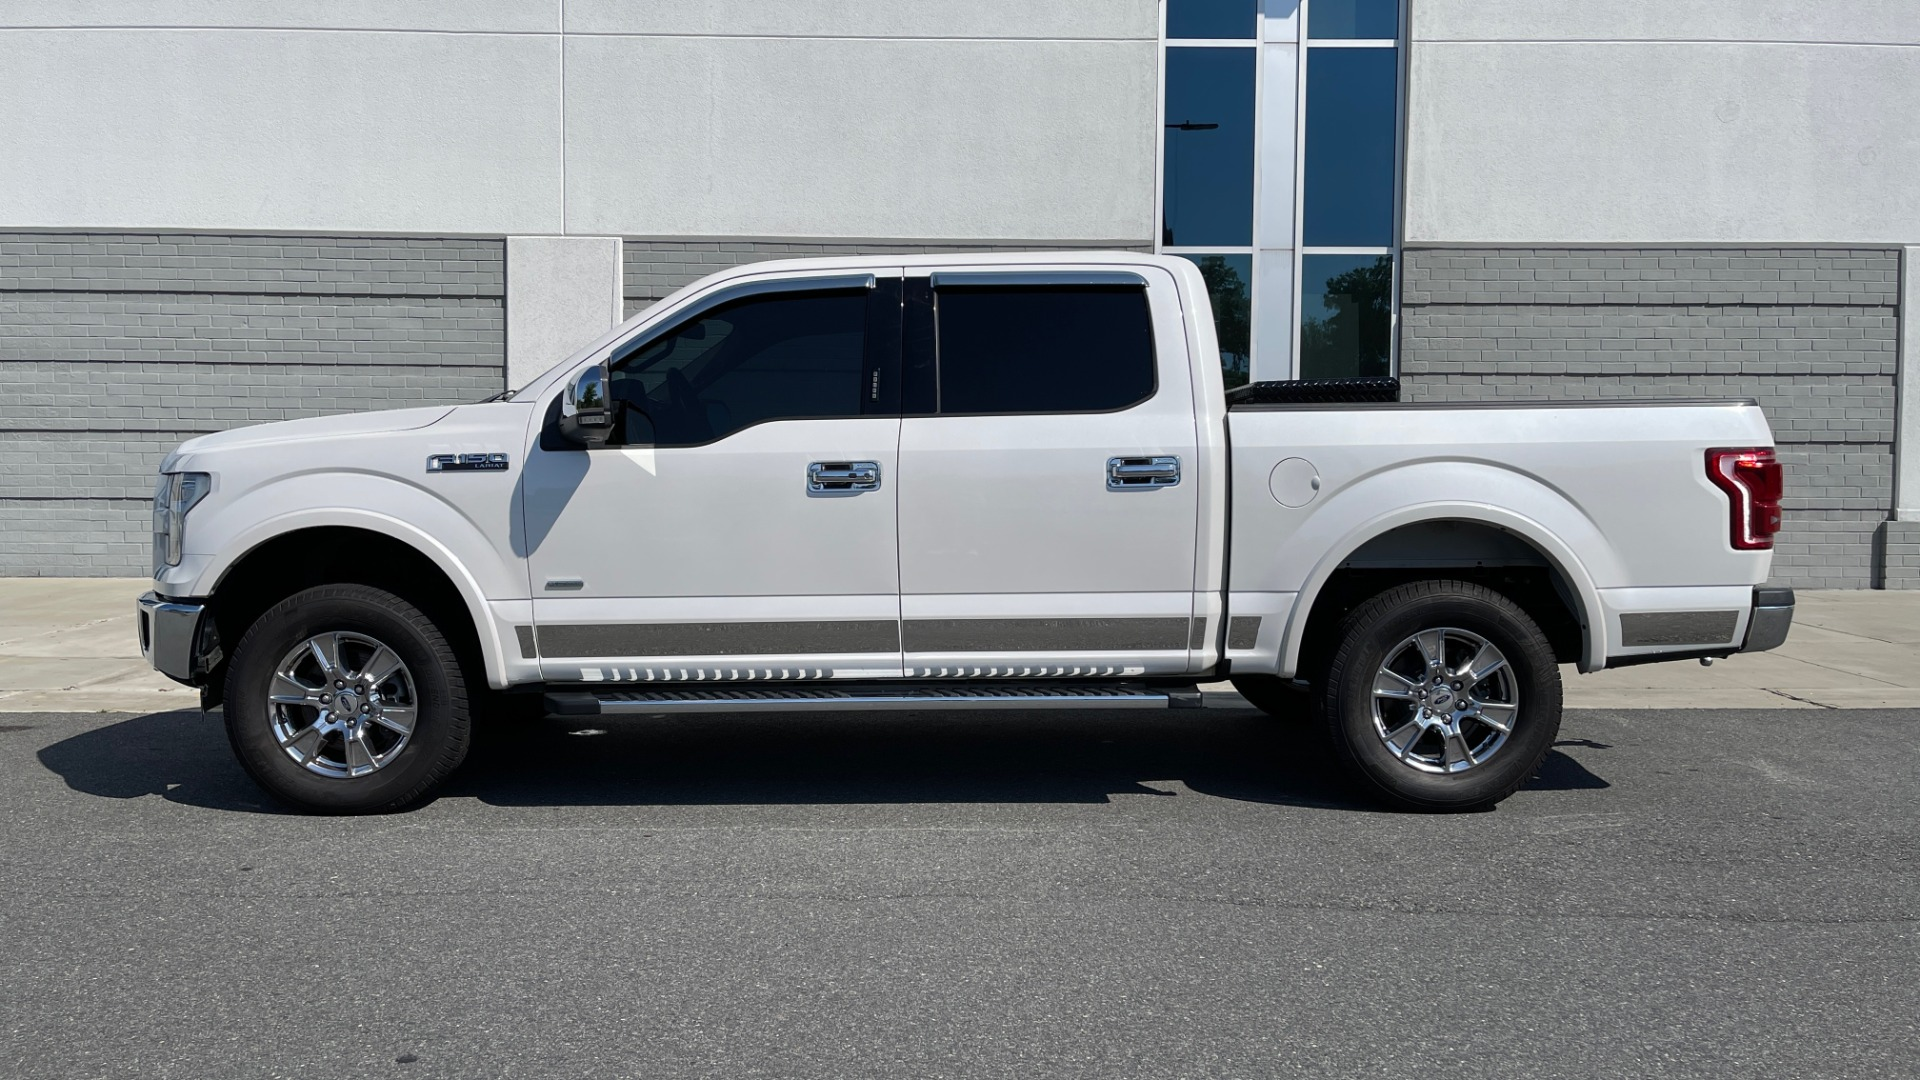 Used 2016 Ford F-150 LARIAT 4X4 / 3.5L V6 / 6-SPD AUTO / BLIS / SONY / NAV / REARVIEW for sale $37,500 at Formula Imports in Charlotte NC 28227 4